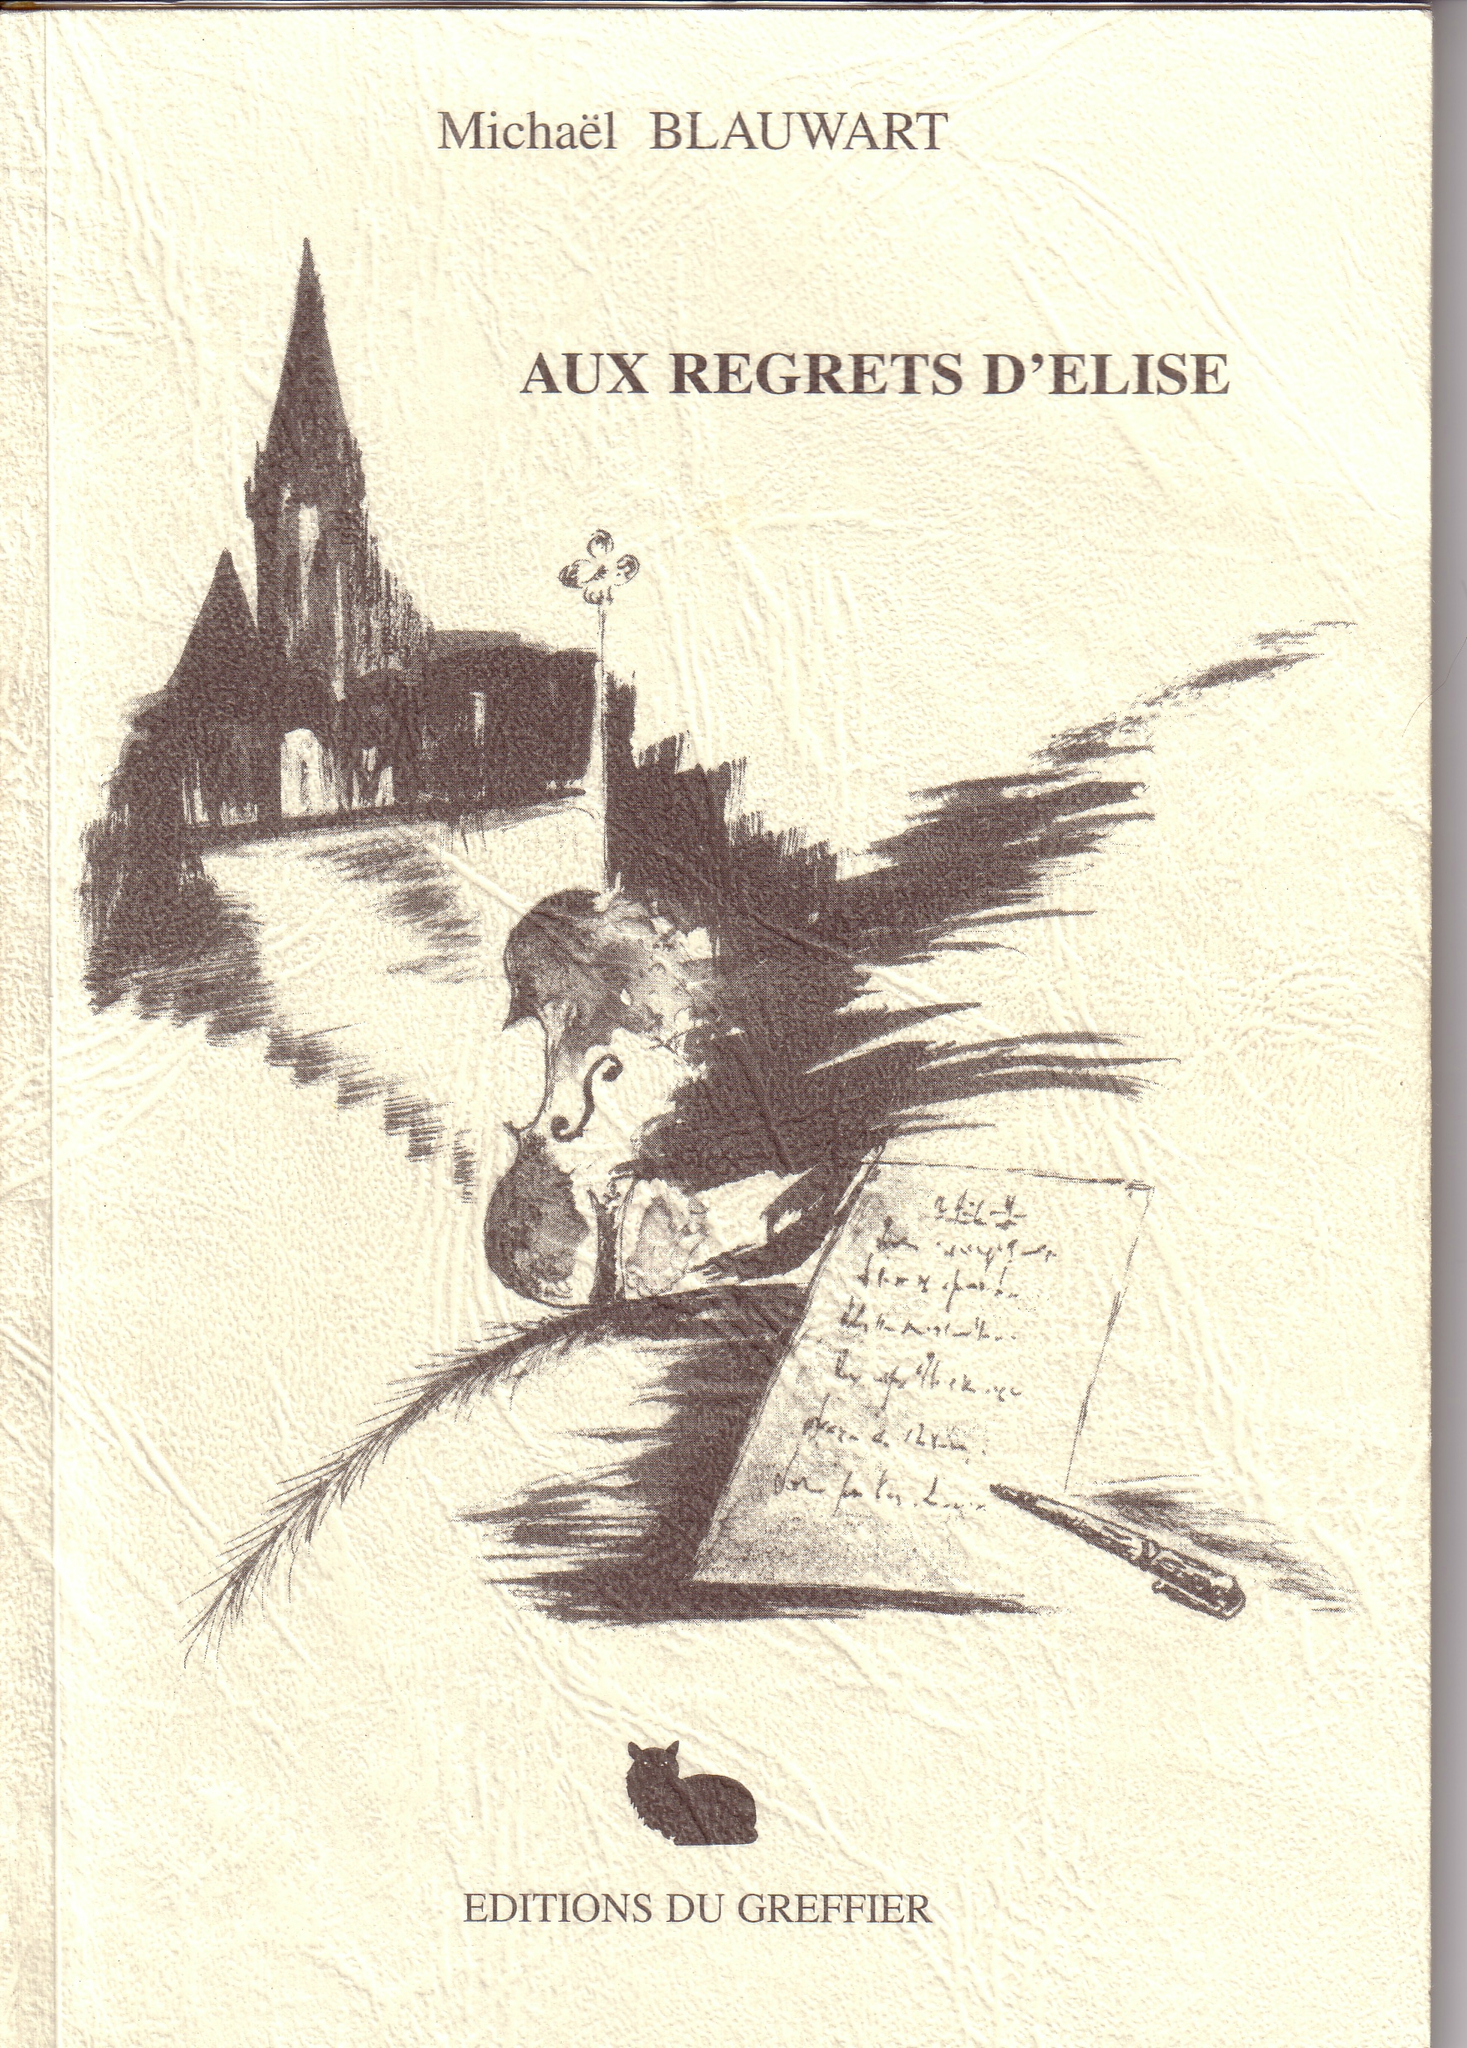 1997 - Aux Regrets d'Elise